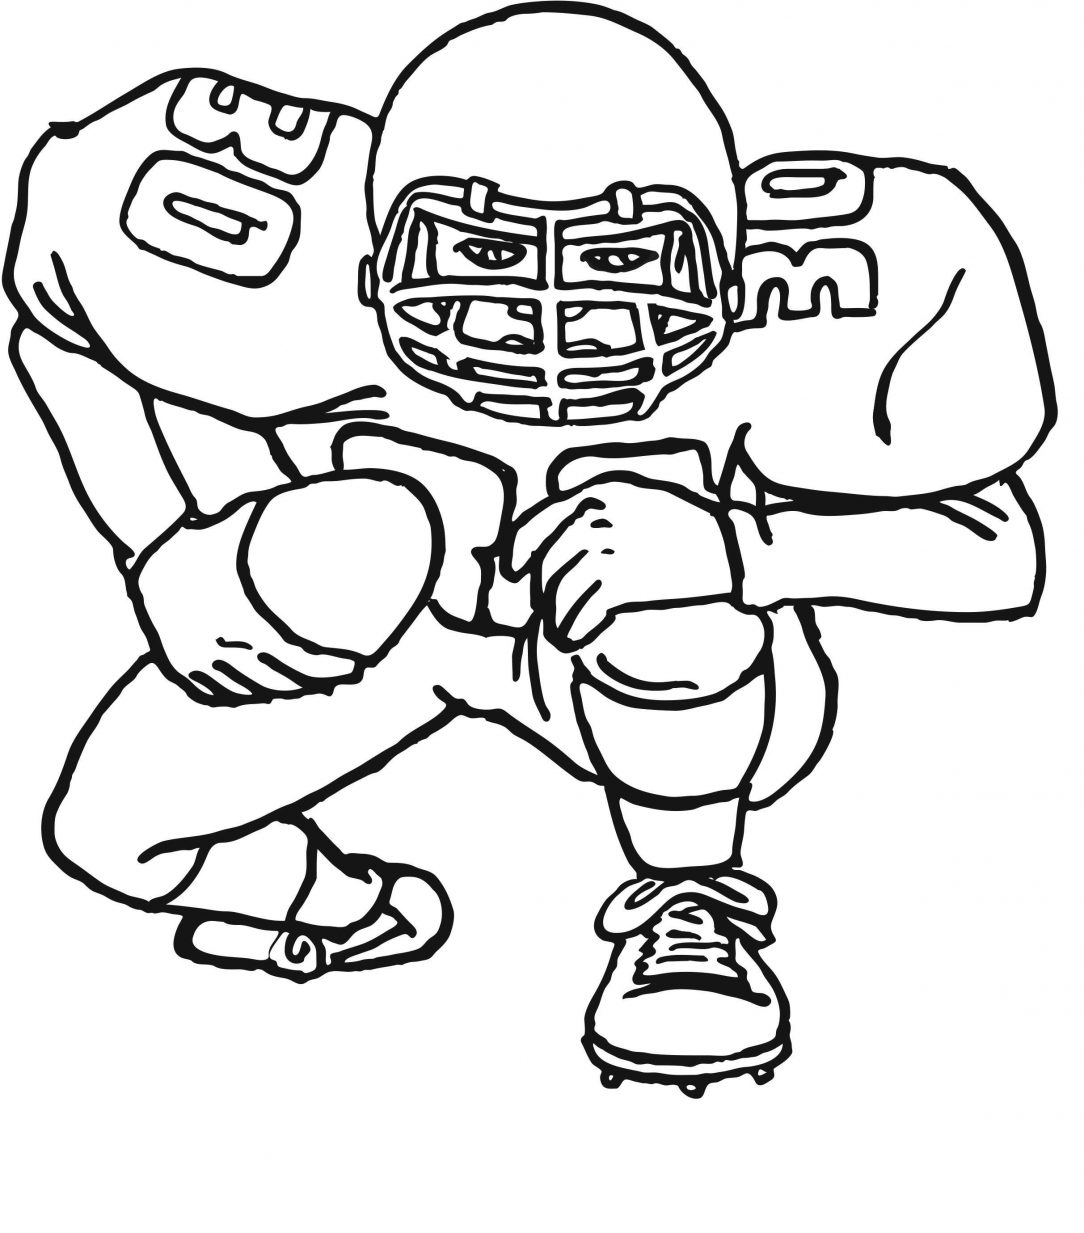 Free Printable Football Helmet Coloring Pages Nfl Michigan Seahawks - Free Printable Seahawks Coloring Pages